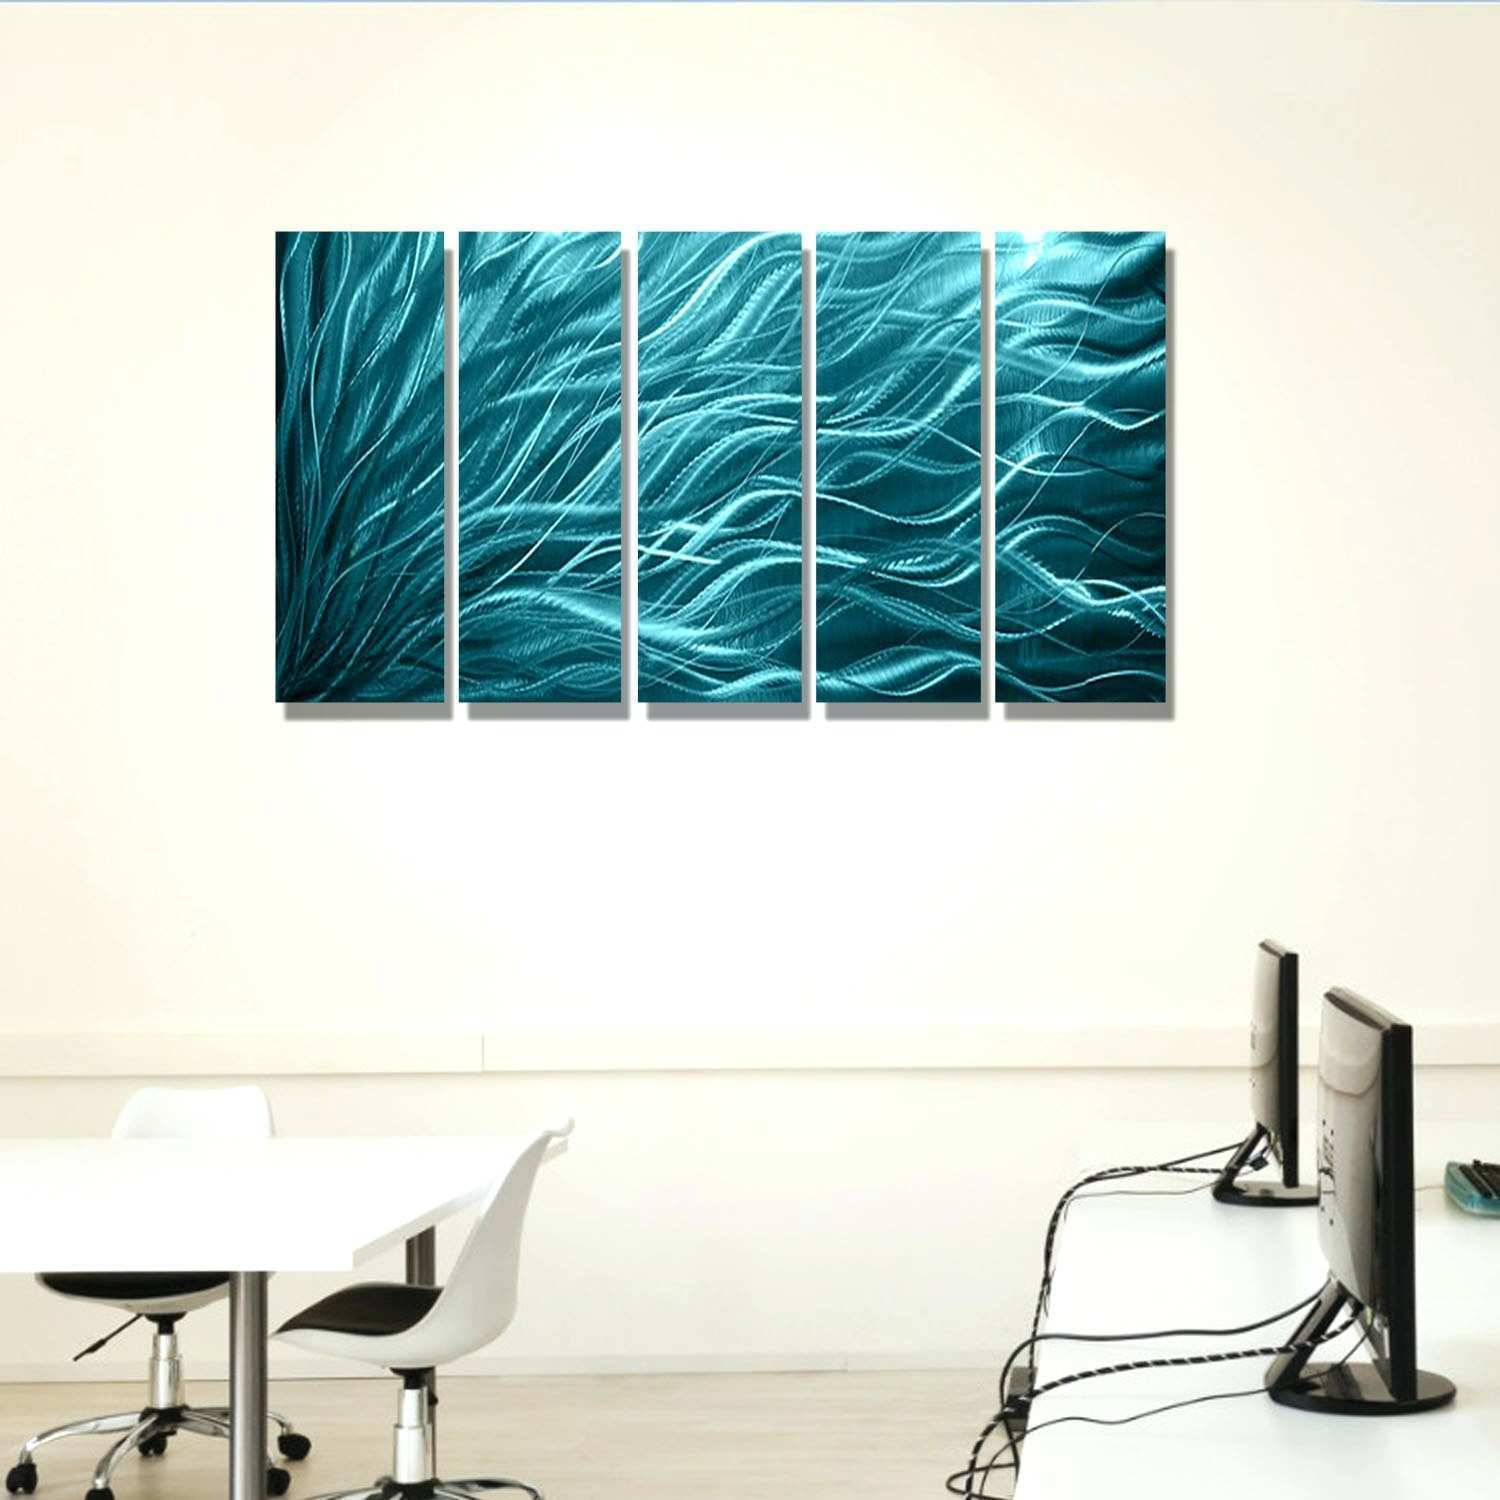 37 Luxury 3 Piece Black and White Wall Art